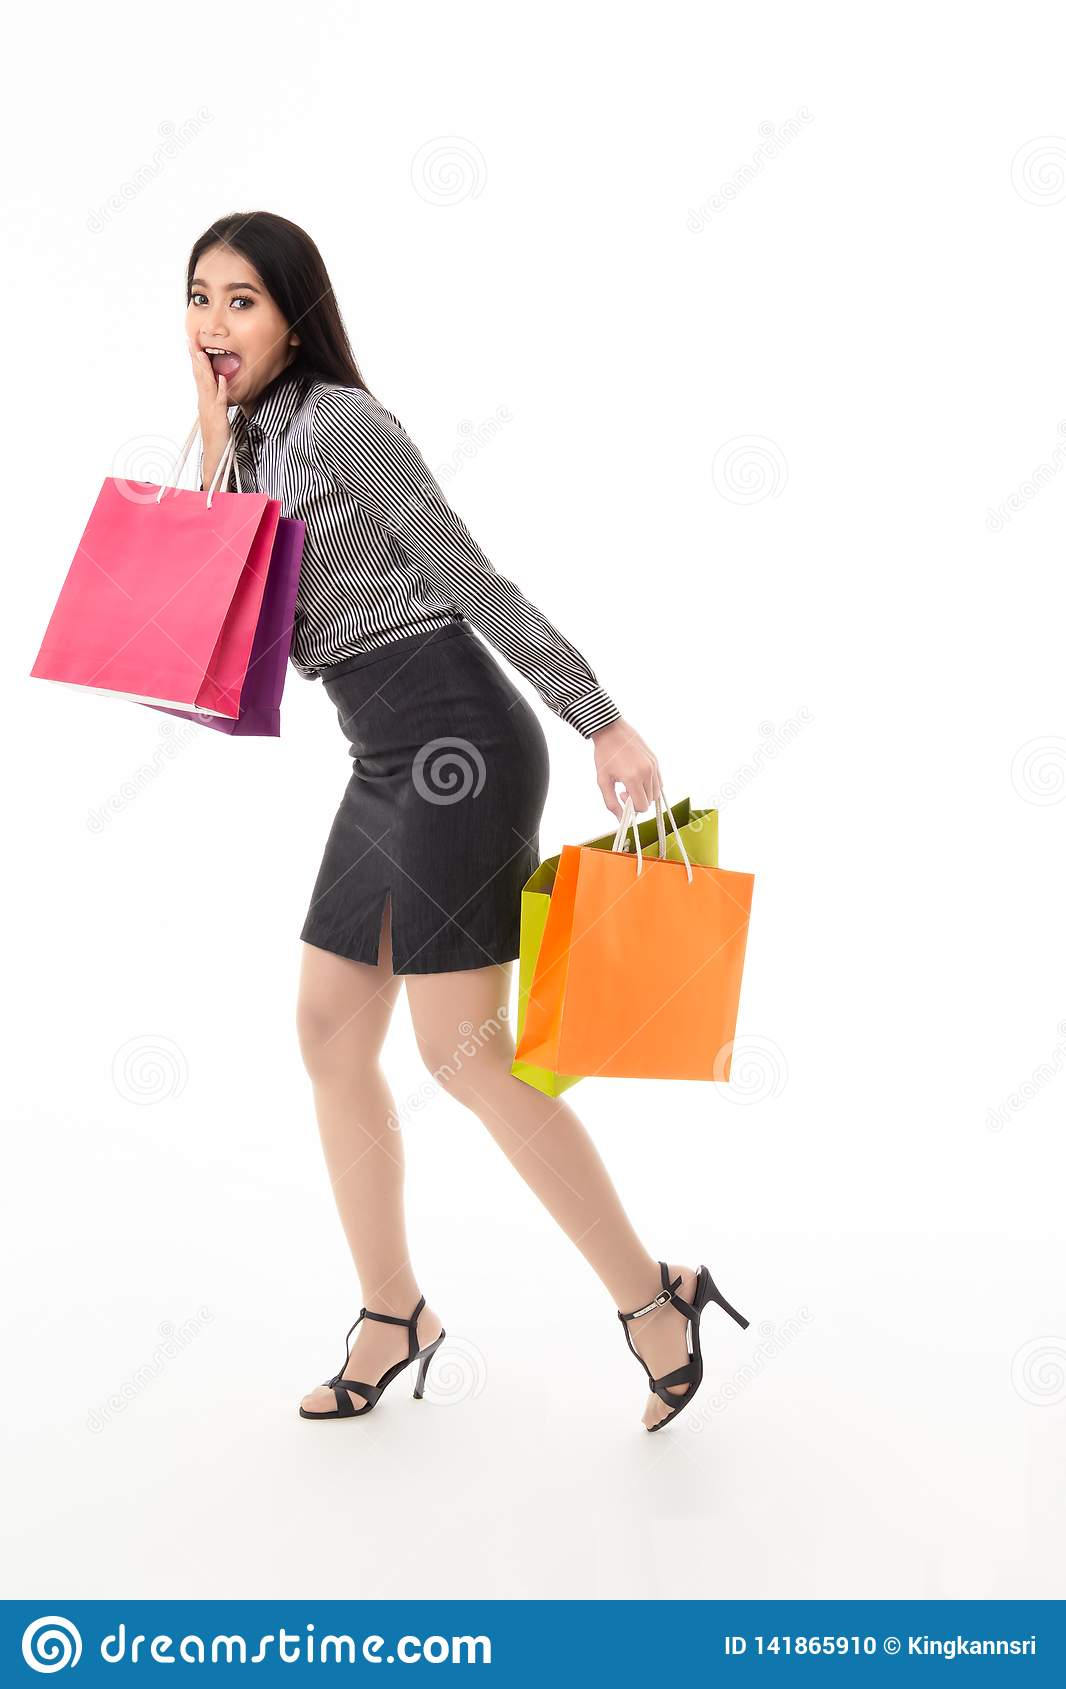 Woman holding shopping bags with gossip and surprising face expression